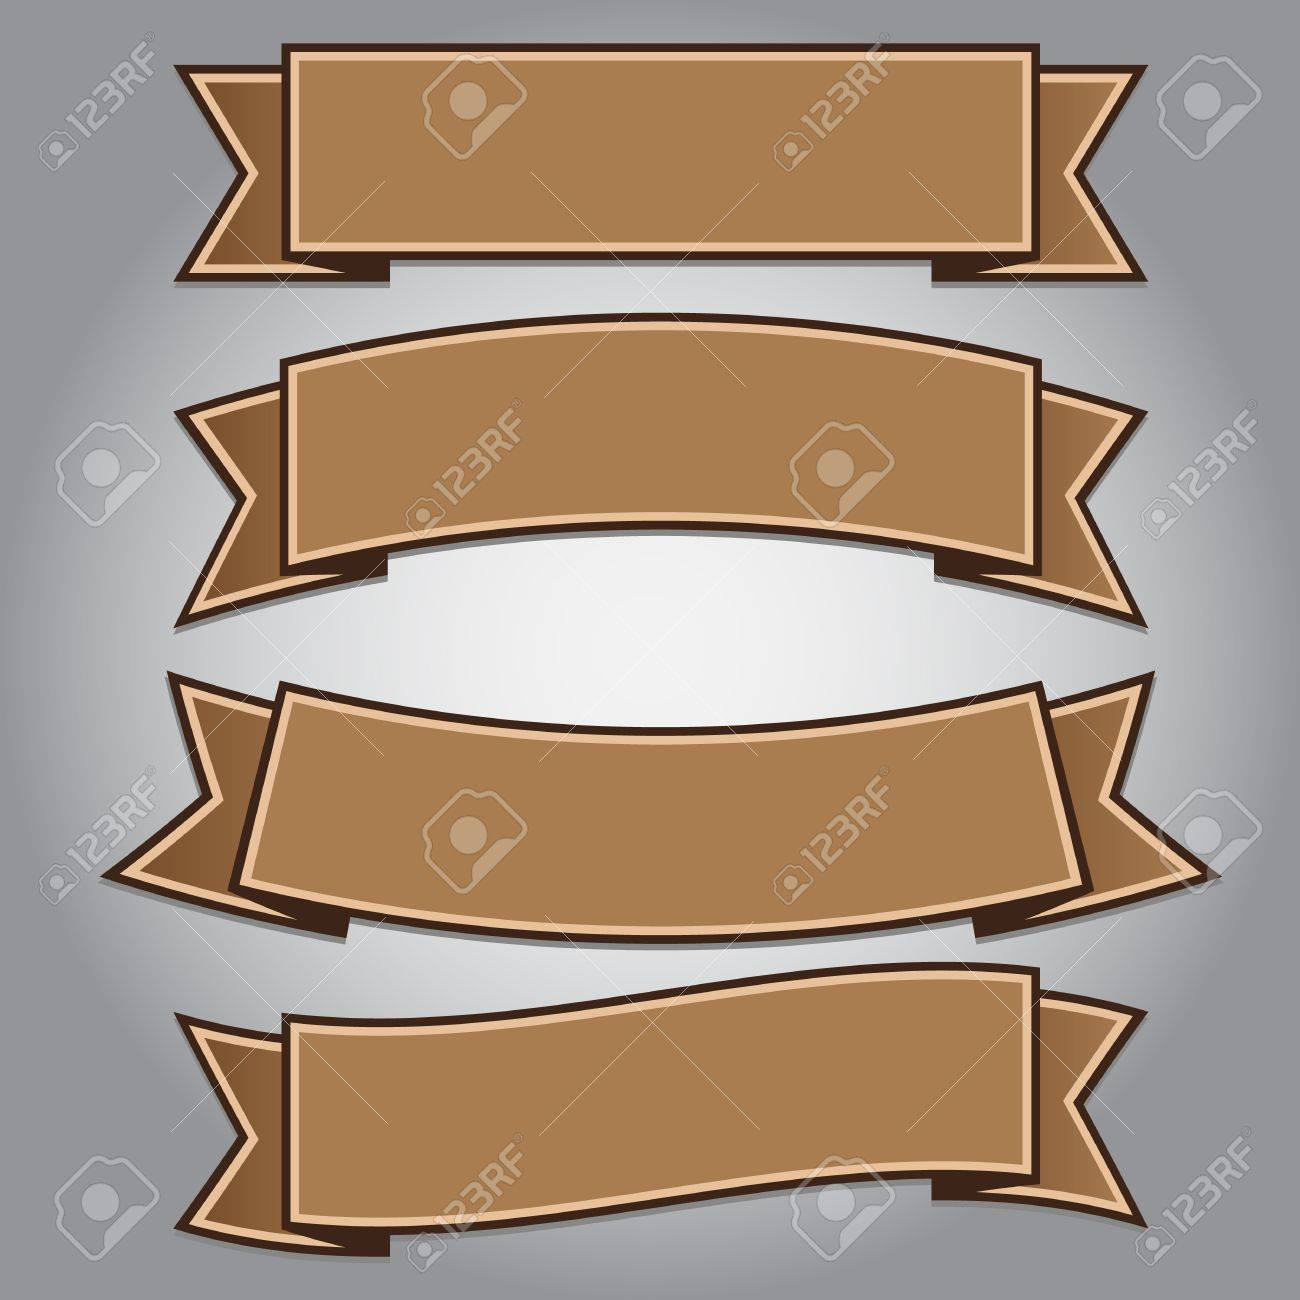 Vintage brown ribbon banners isolated,vector illustration Stock Vector - 17581088